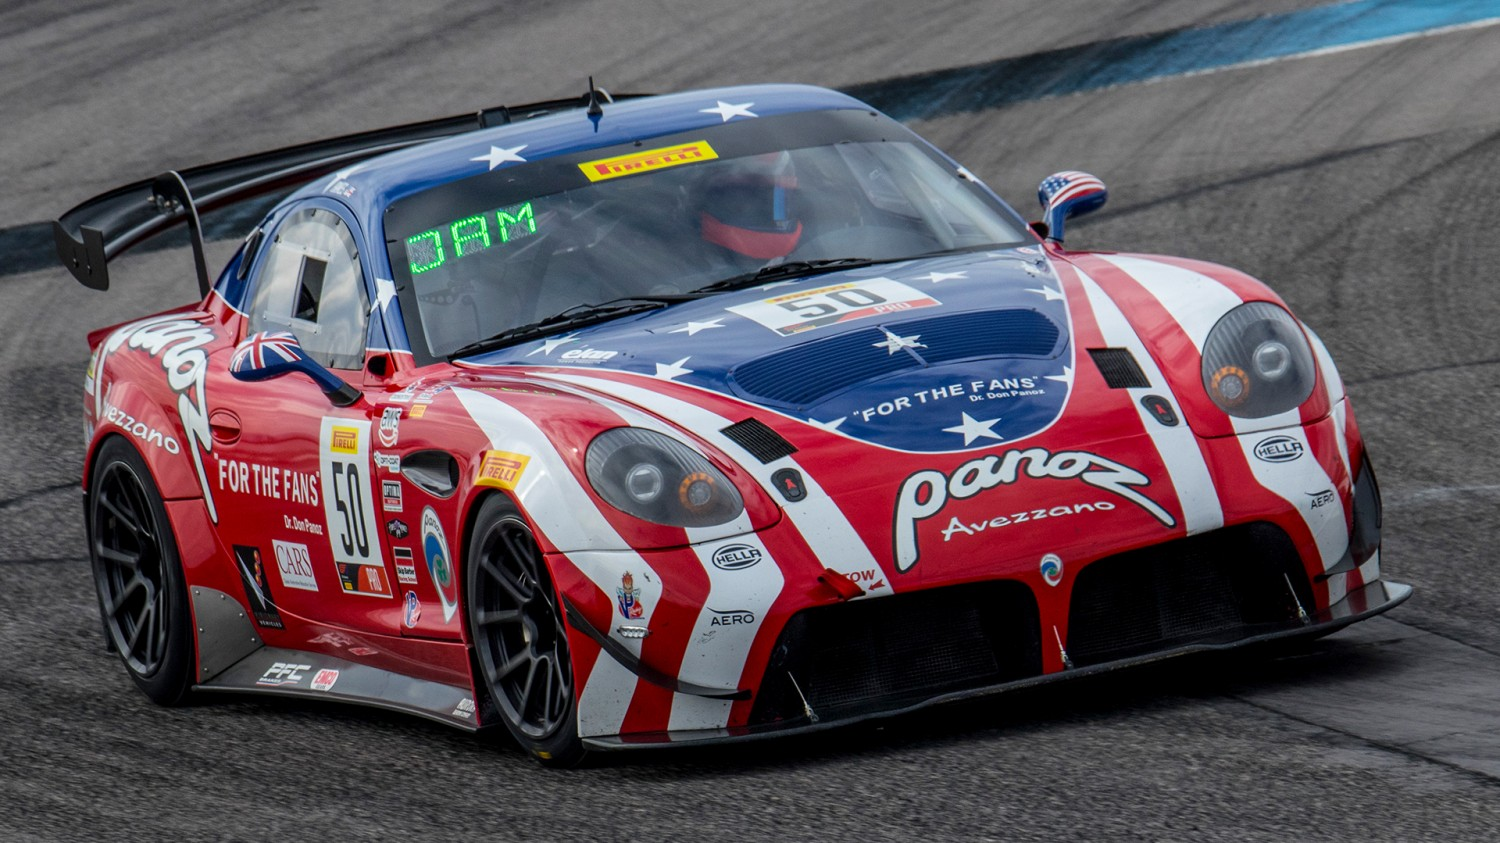 Ian James Strikes First in Thrilling Pirelli GT4 America Race 1 from Las Vegas Motor Speedway